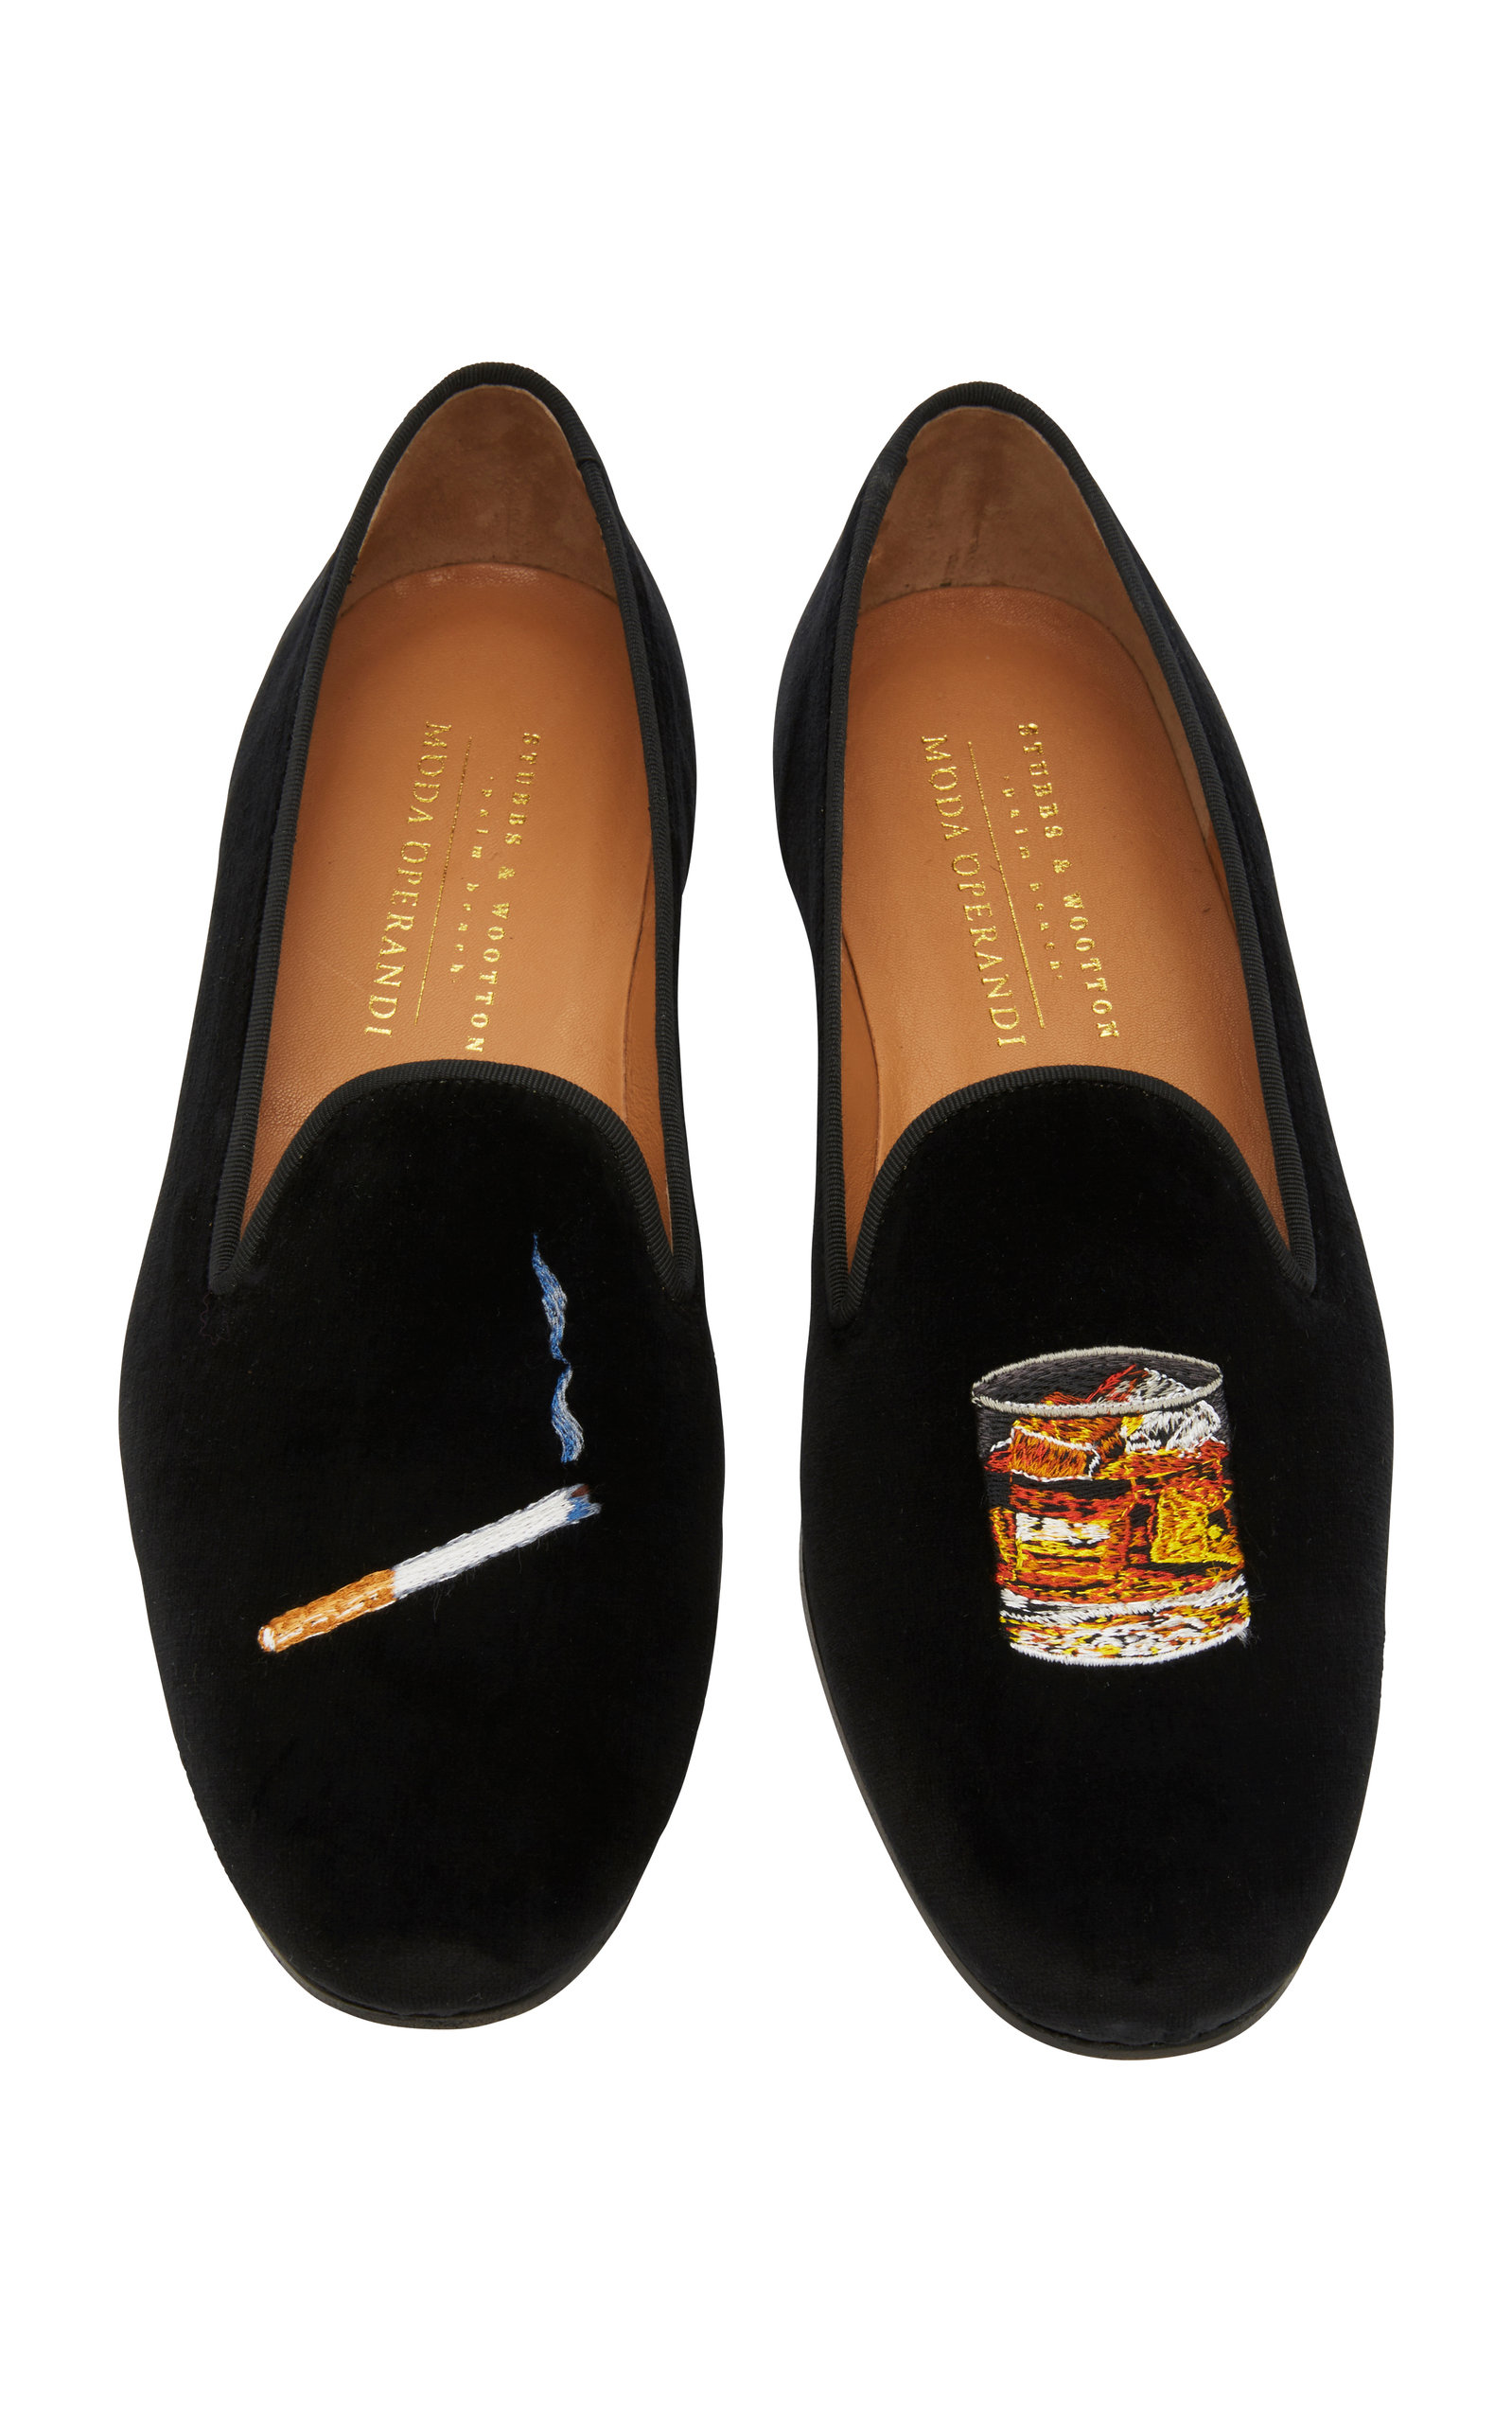 STUBBS & WOOTTON Exclusive Cigarette And Scotch Velvet Slippers in Black